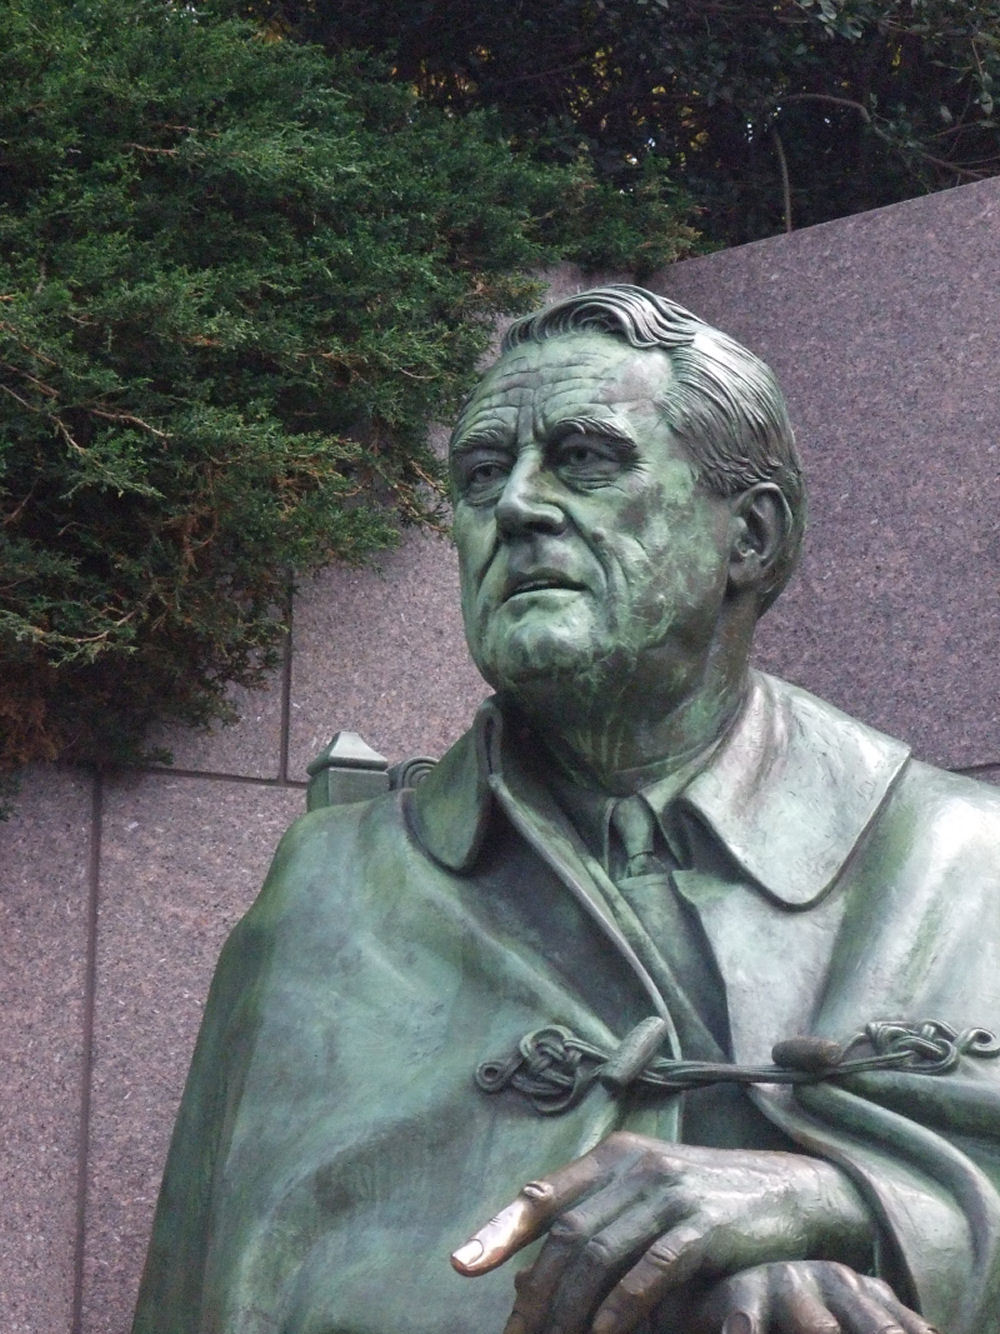 fdr statue high Art HD Wallpaper